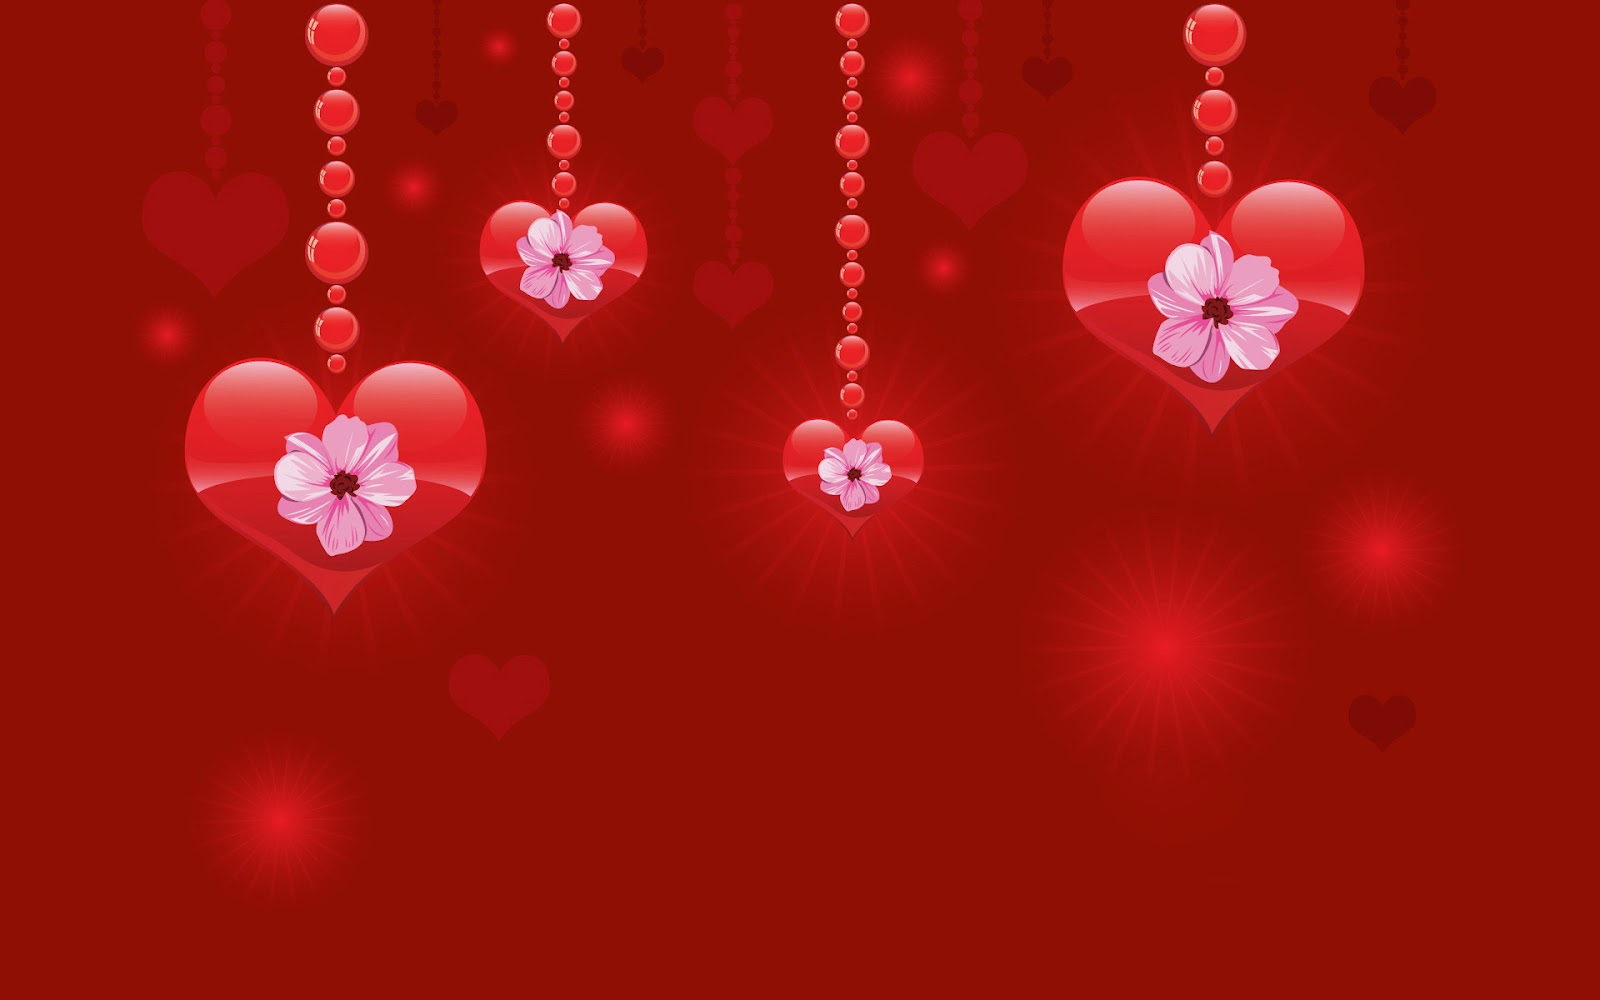 valentines day wallpapers 2013 2014 wallpaper hd